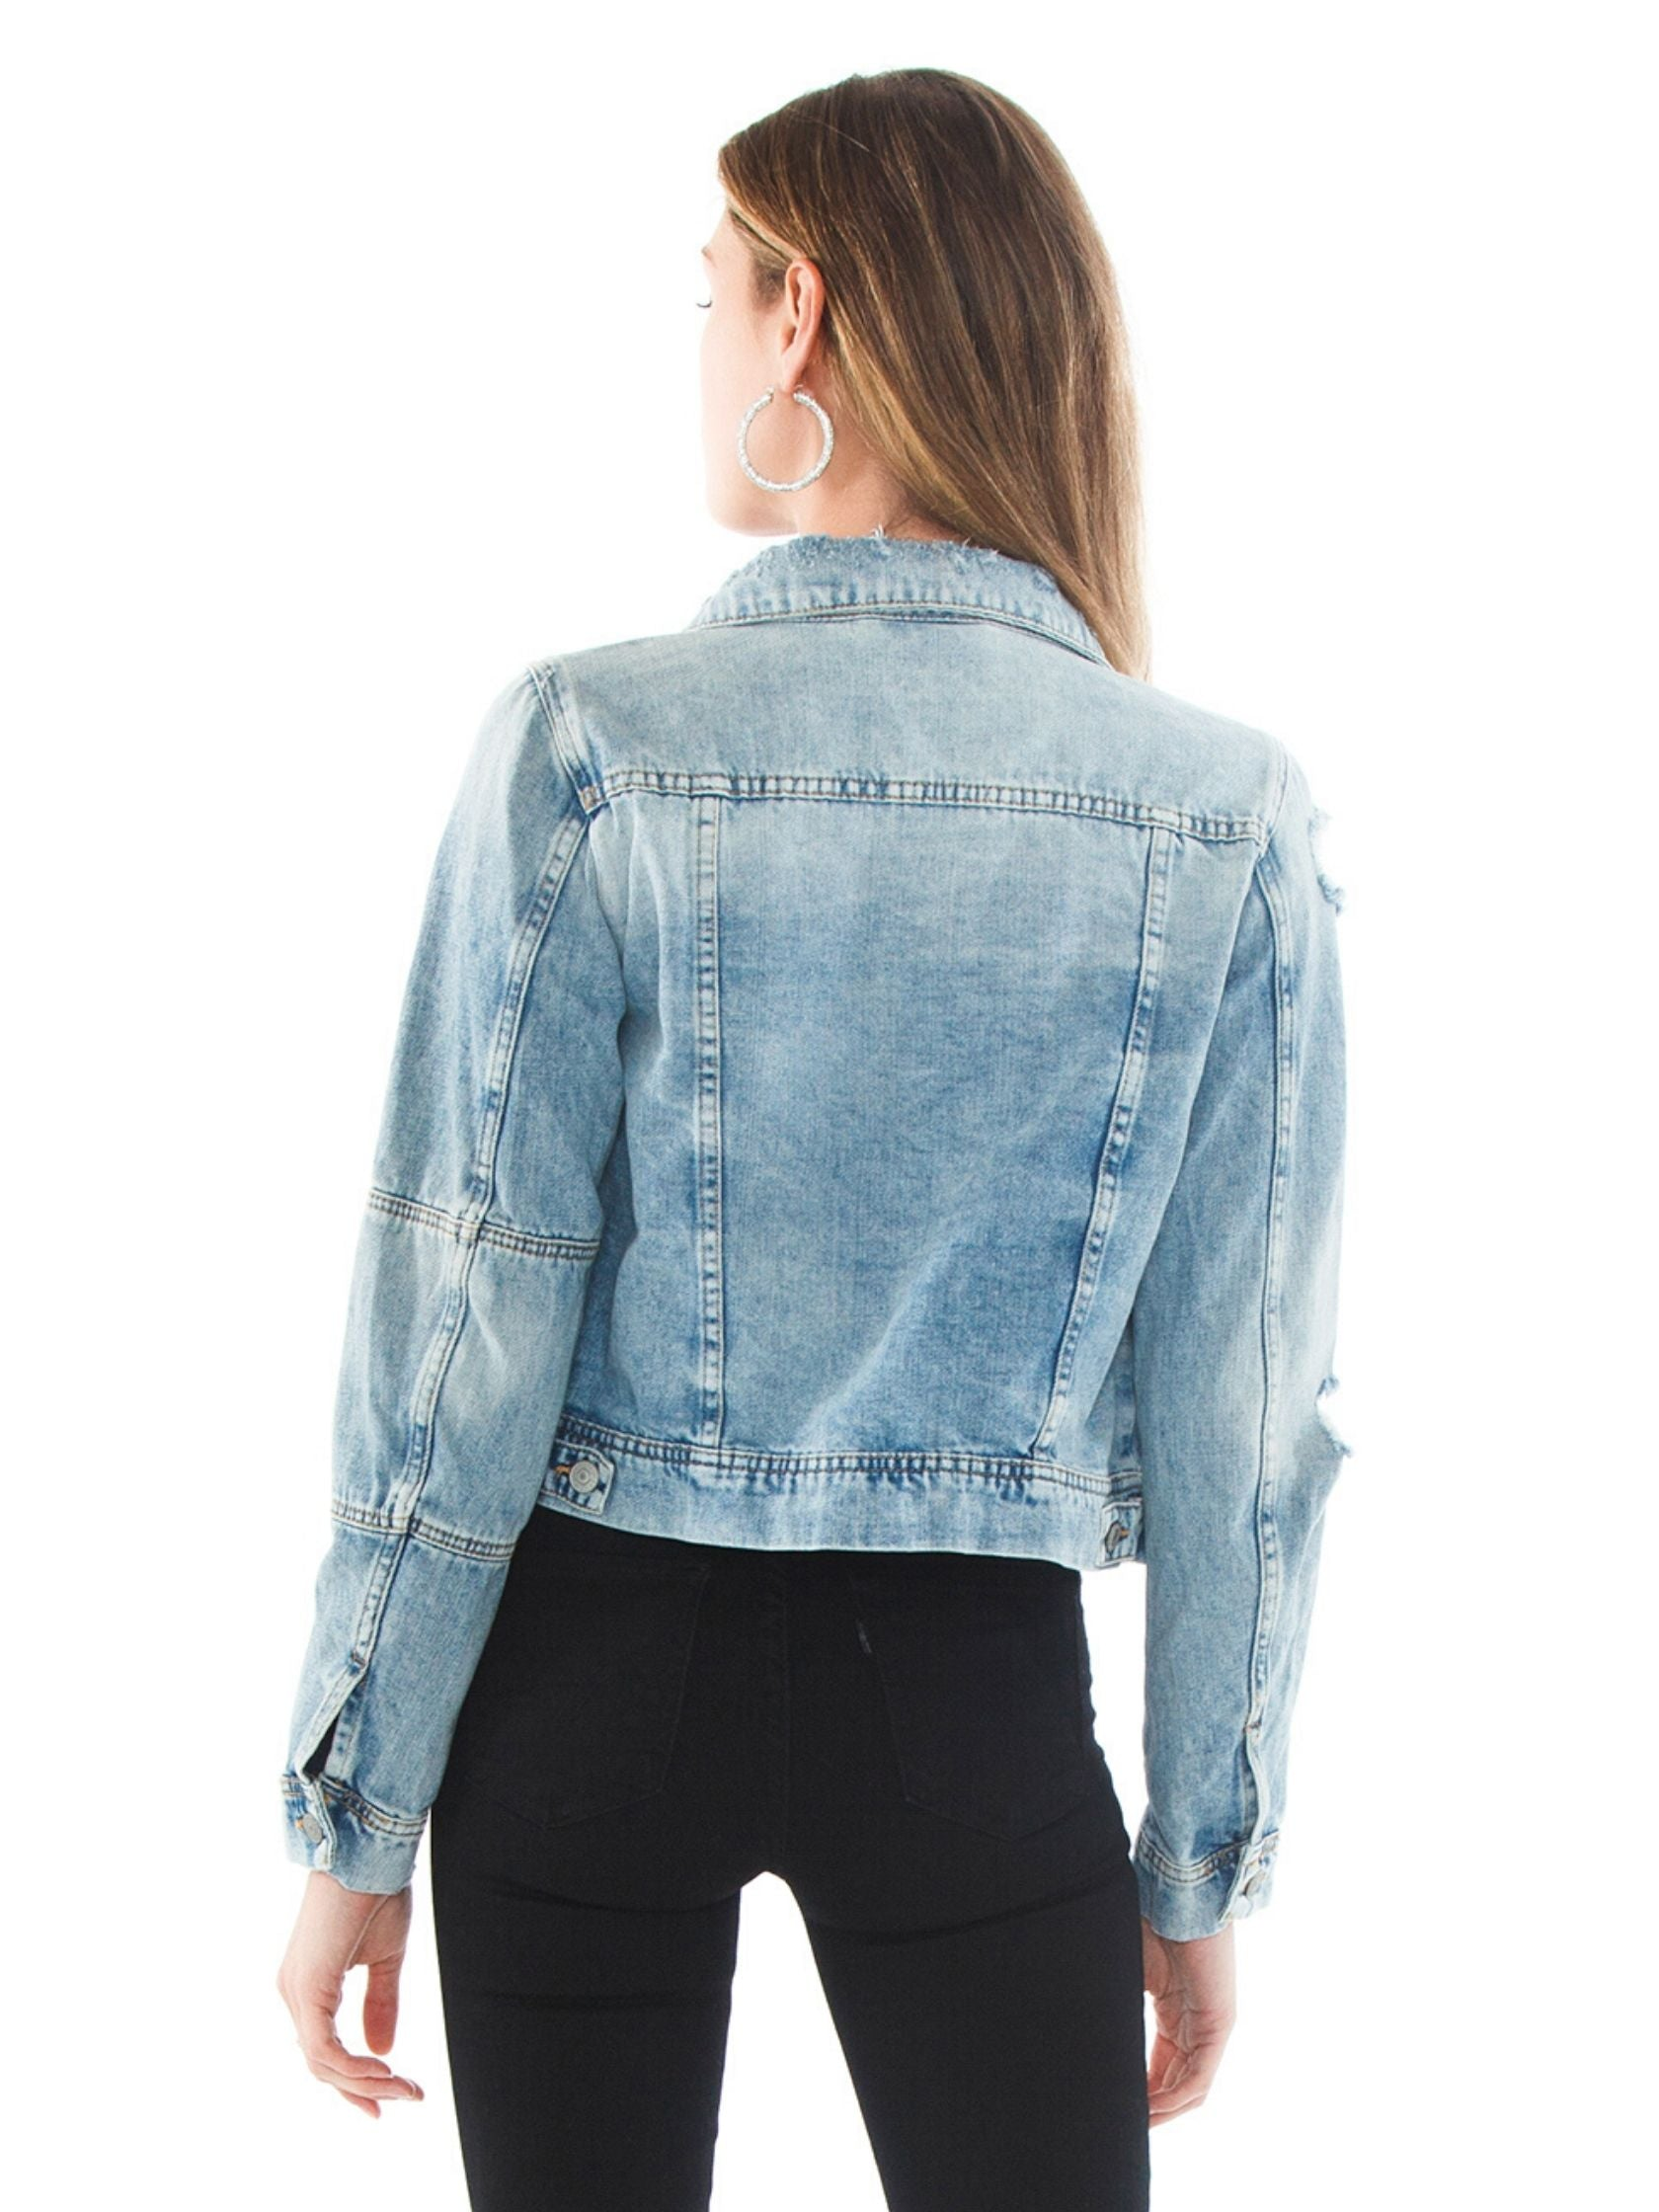 Women outfit in a jacket rental from Free People called Rumors Denim Jacket